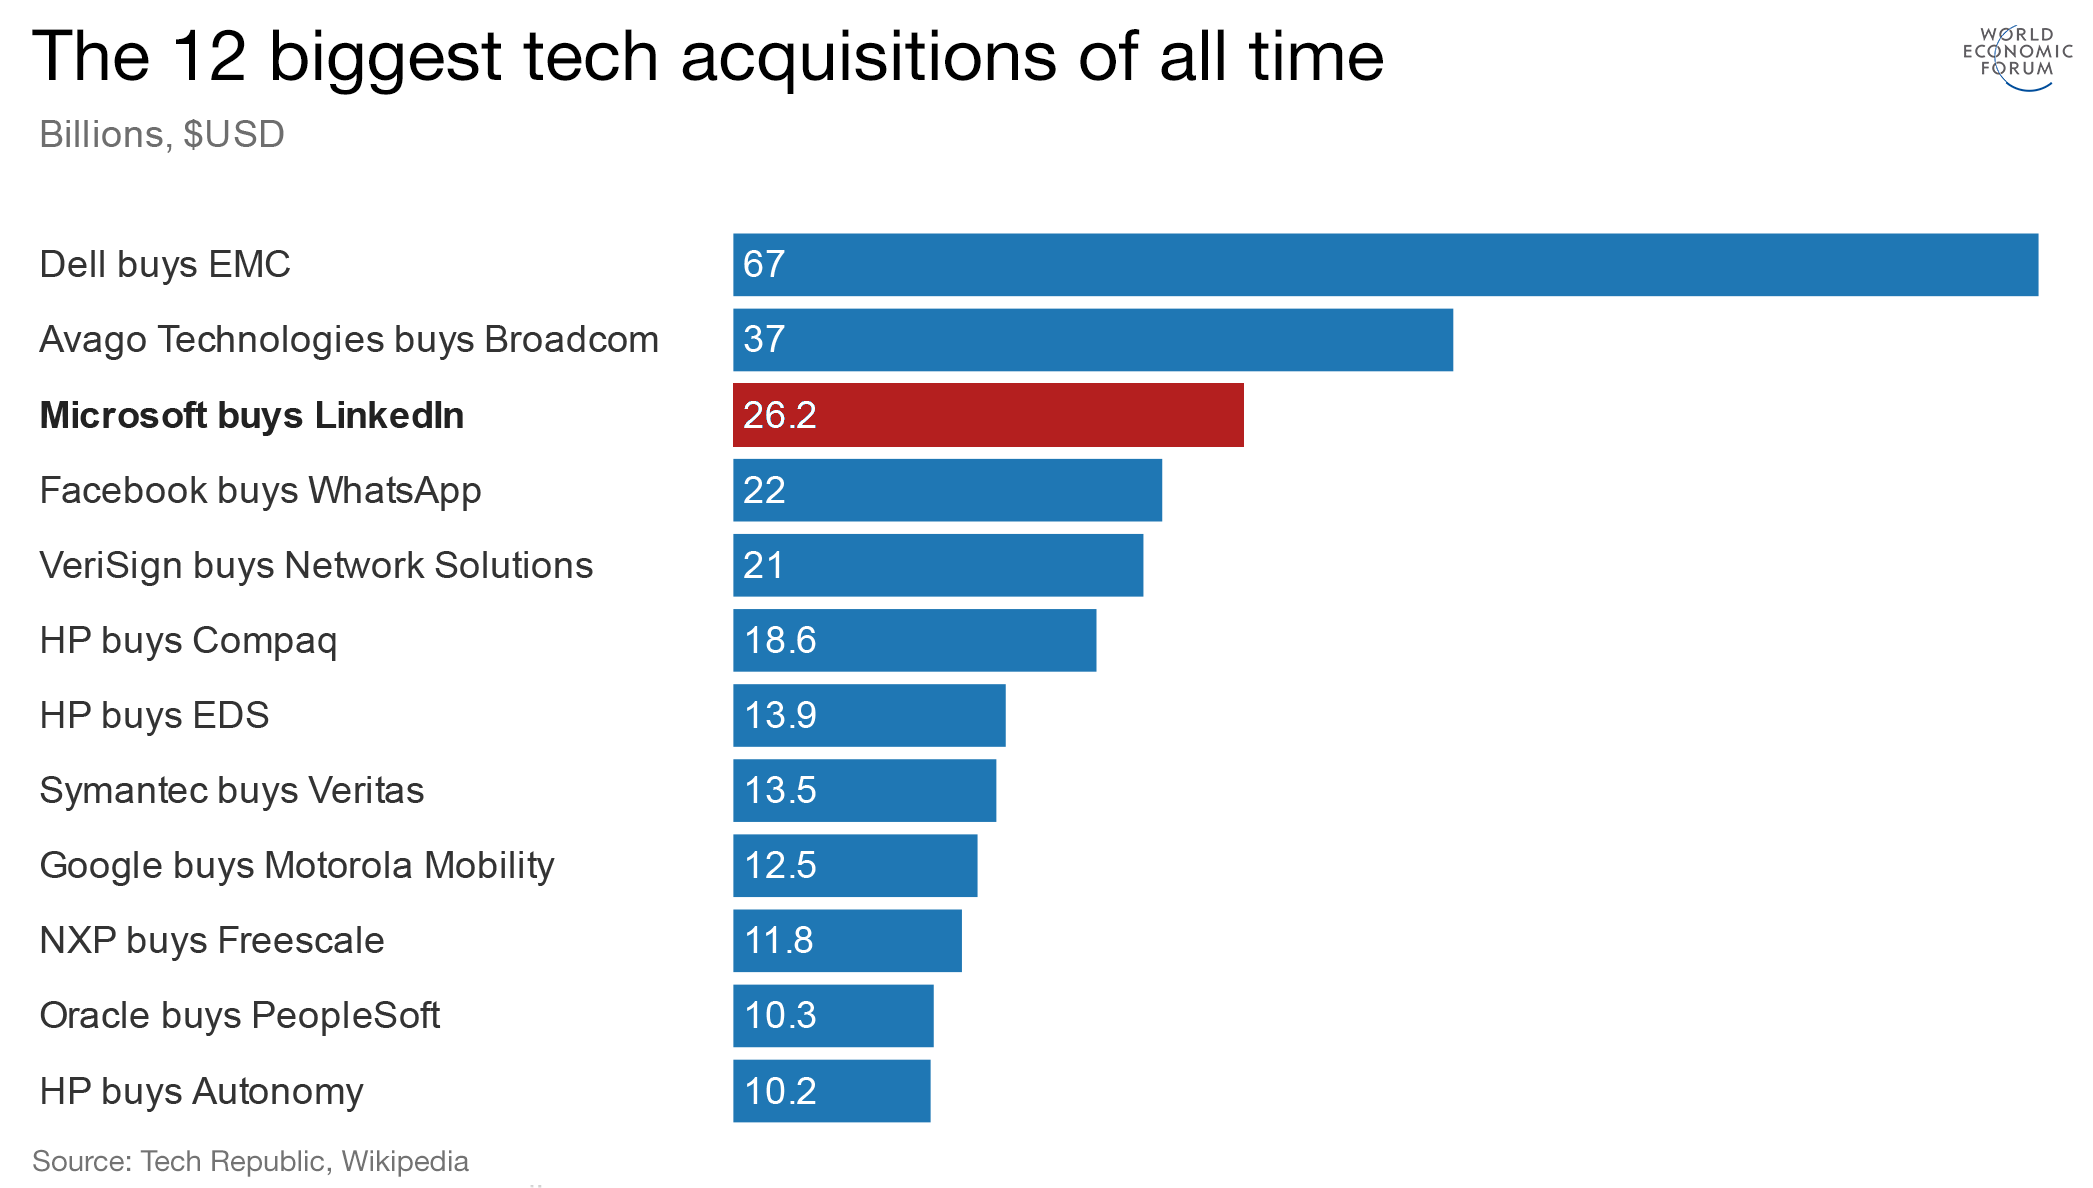 12 biggest tech acquisitions of all time